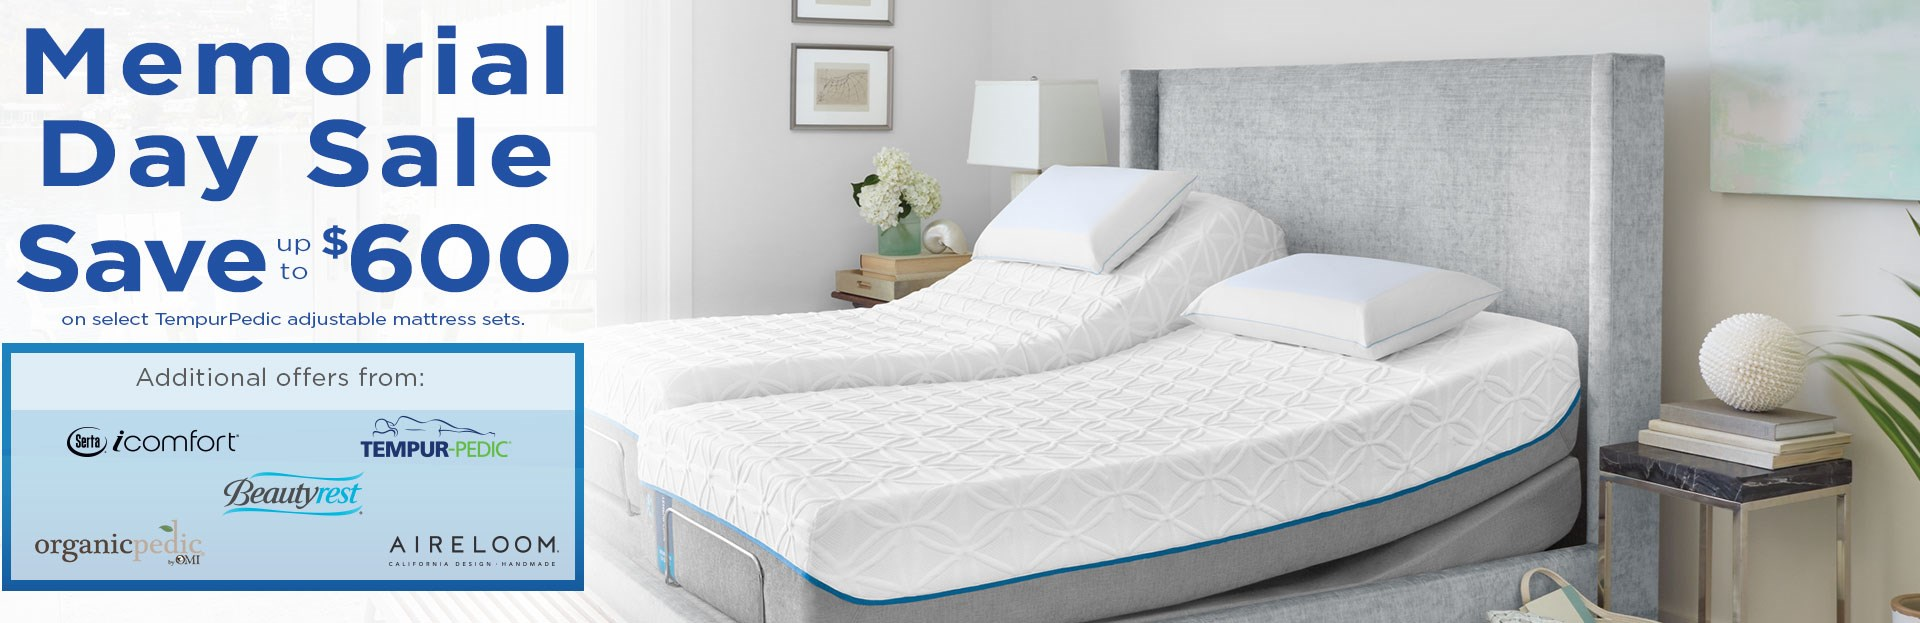 Memorial day sale; save up to $600 on select TempurPedic adjustable mattress sets. See store for details.